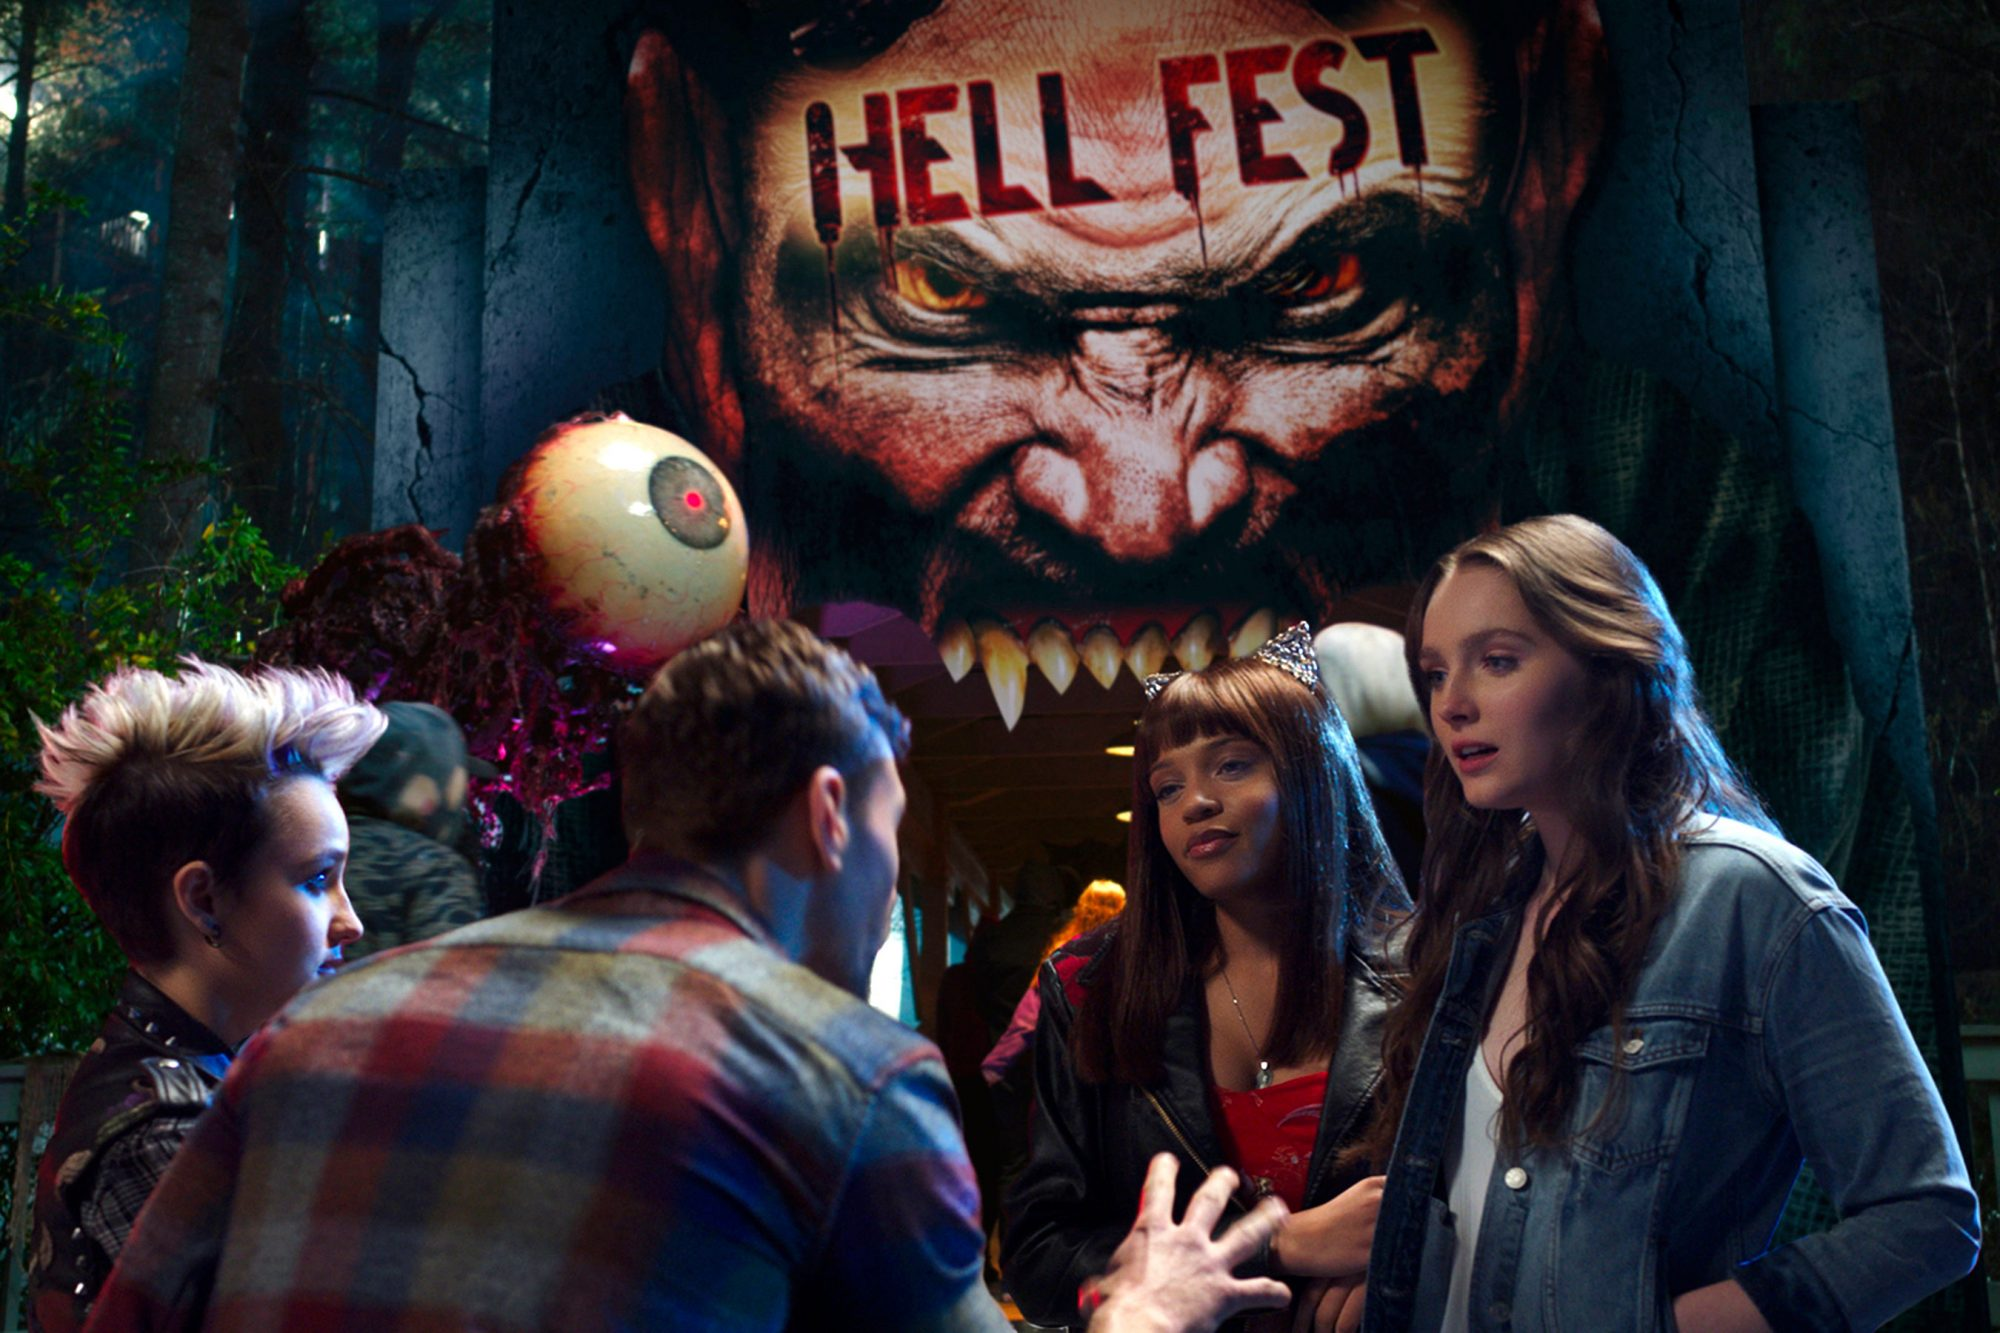 Hell Fest - 9/28 (Theatrical)